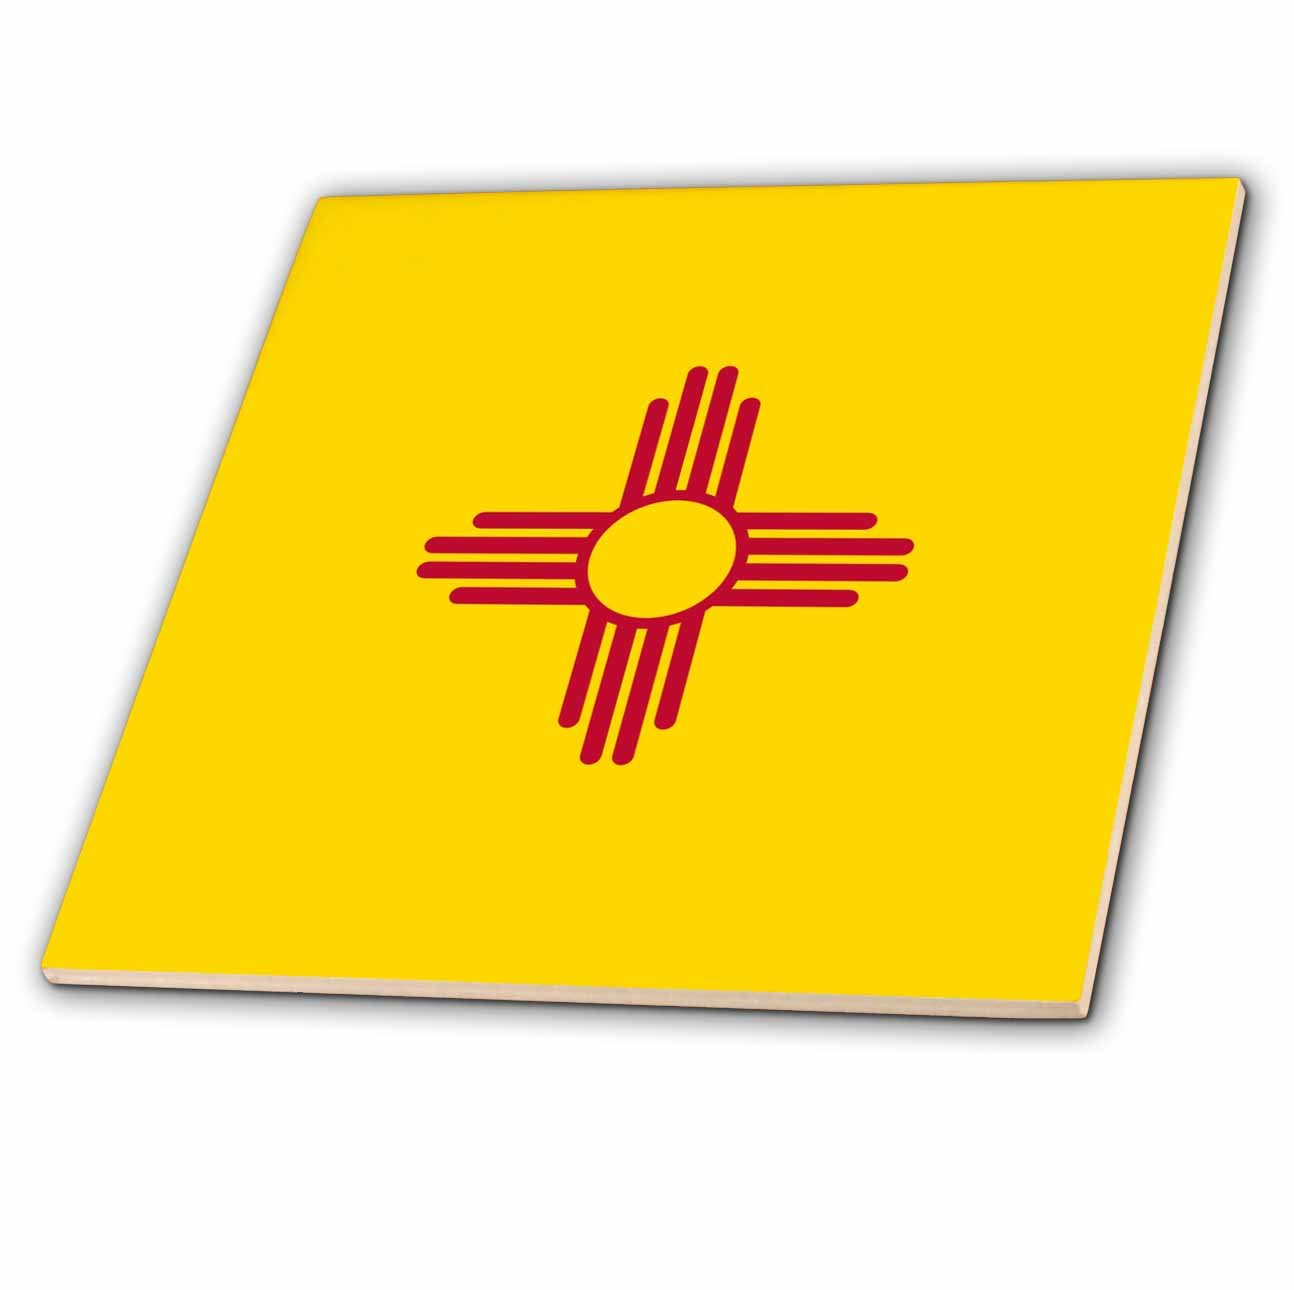 3dRose ct_158391_3 Flag of New Mexico Us American United State of America Usa Red Sun Symbol of The Zia on Yellow Ceramic Tile, 8-Inch by 3dRose